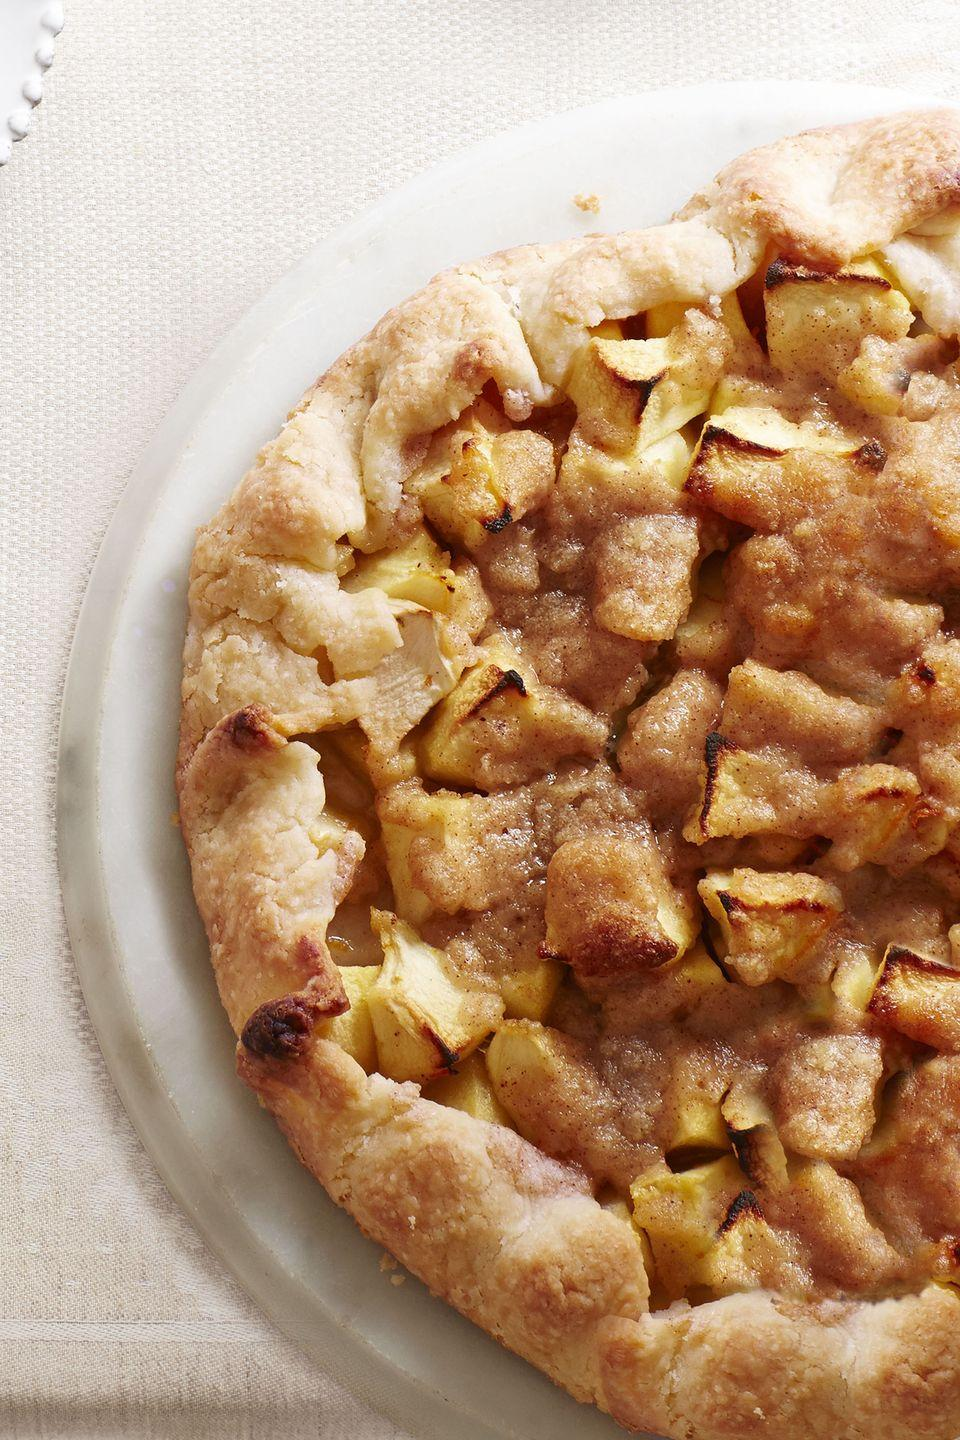 "<p>The dough for this easier, free-form version of apple pie can be made in advance. All you have to do on the big day is roll it out, fill it, and pop it in the oven as you sit down to feast.</p><p><a href=""https://www.goodhousekeeping.com/food-recipes/a15408/apple-crostata-recipe-ghk1113/"" rel=""nofollow noopener"" target=""_blank"" data-ylk=""slk:Get the recipe for Apple Crostata »"" class=""link rapid-noclick-resp""><em>Get the recipe for Apple Crostata »</em></a></p>"